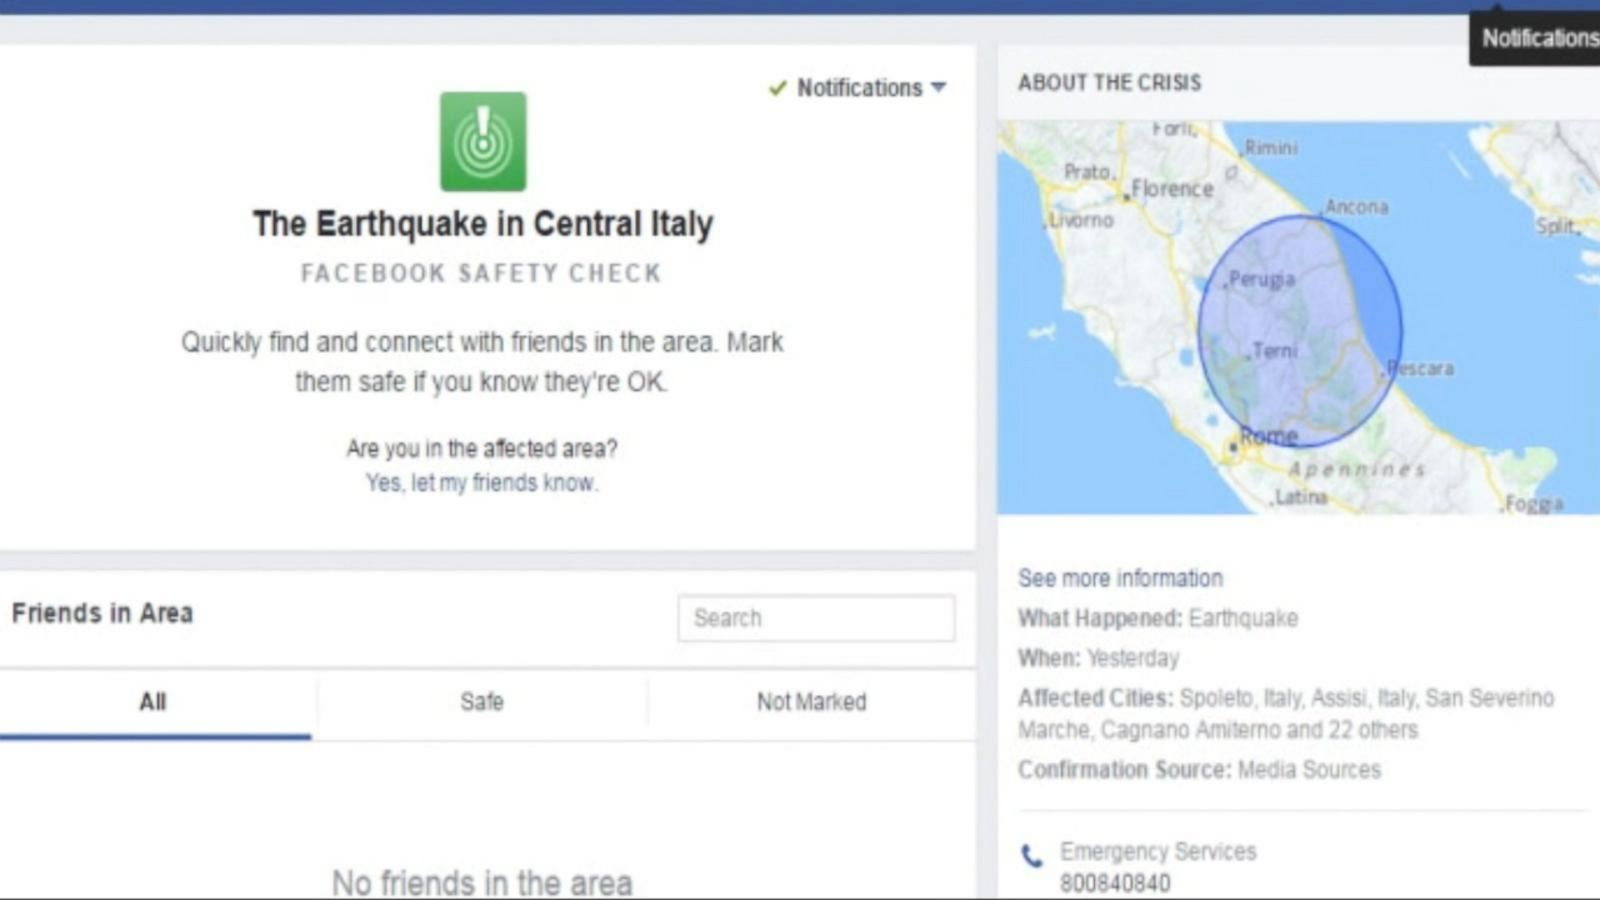 Facebook Has Activated Its 'Safety Check' Feature Following An Earthquake In Central Italy